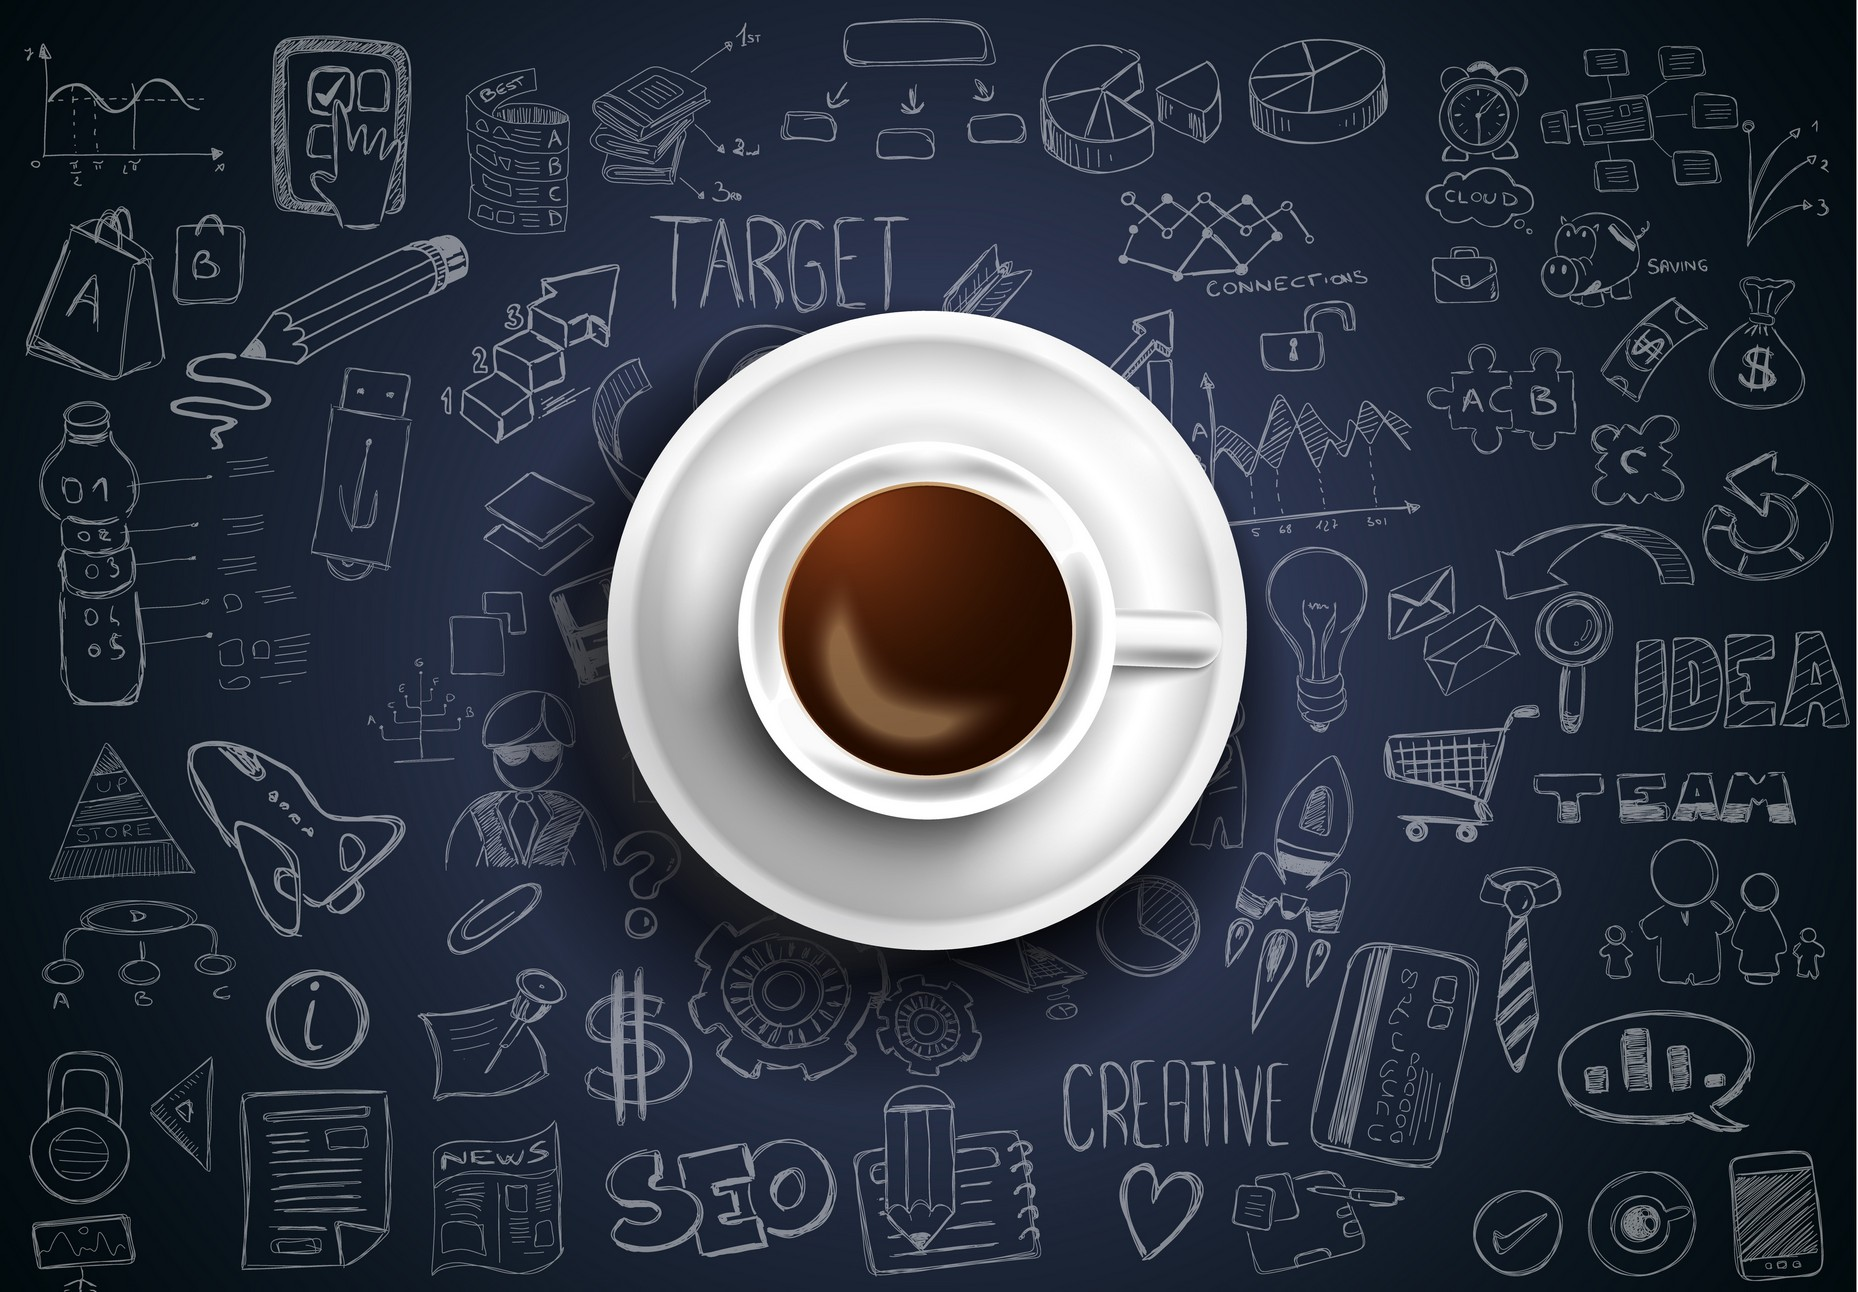 Seattle Promote Office Productivity | Break Room Services | Single Cup Coffee Service